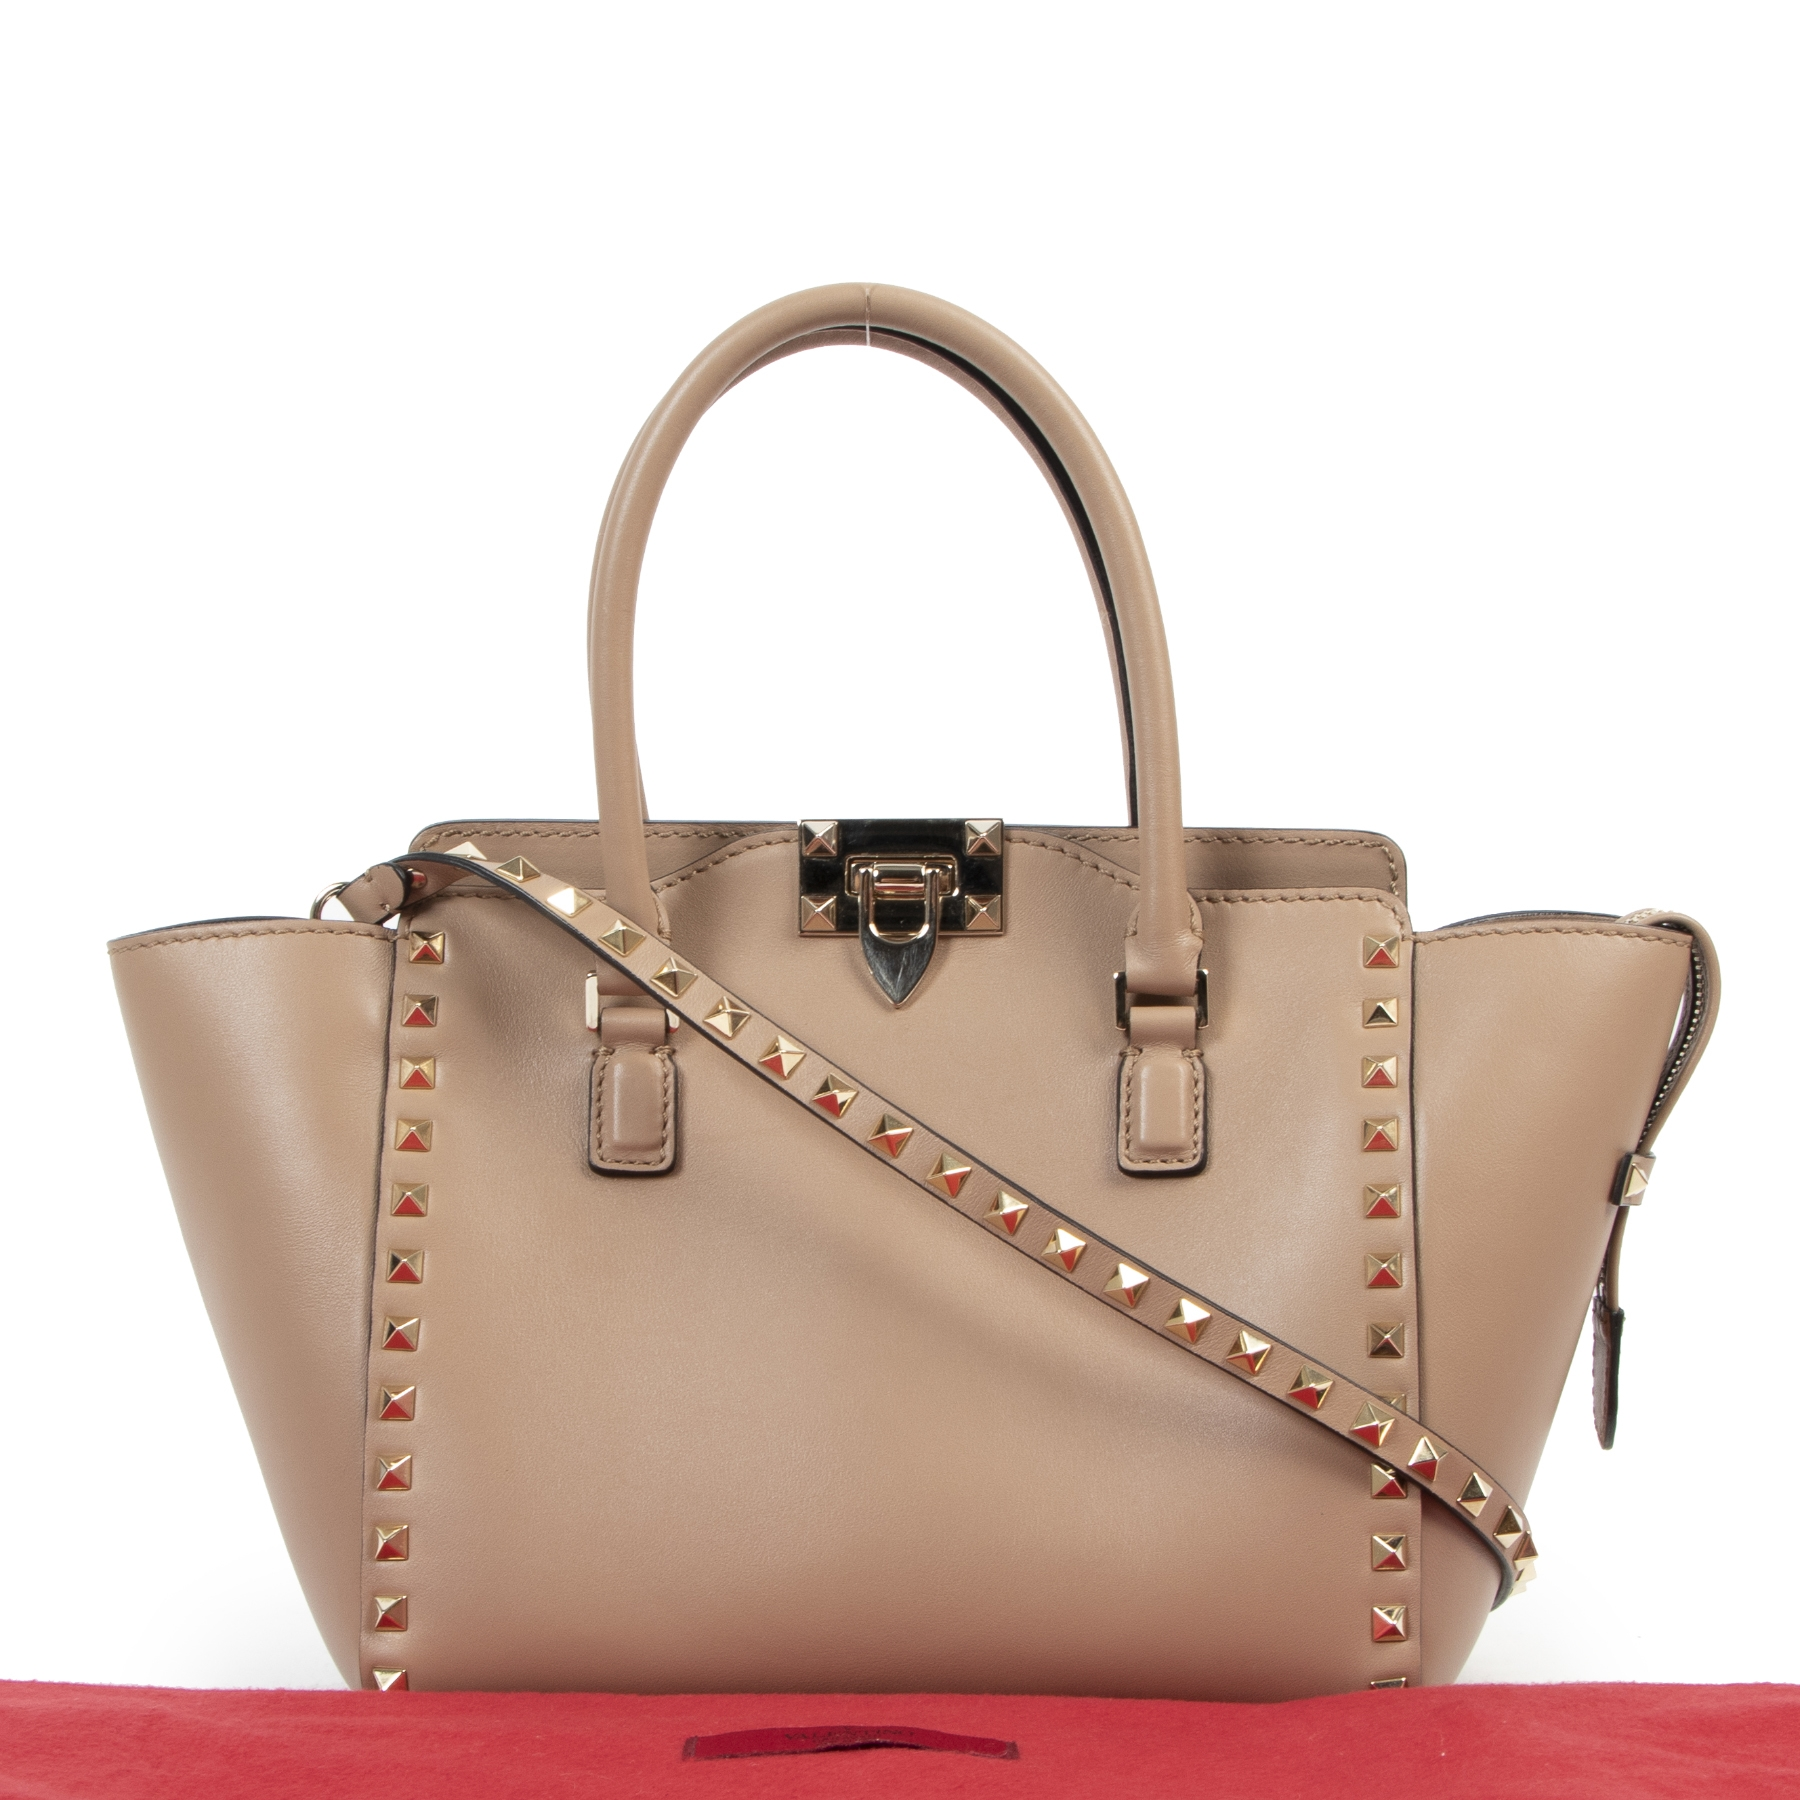 Valentino Garavani Nude Rockstud Small Leather Trapeze Bag